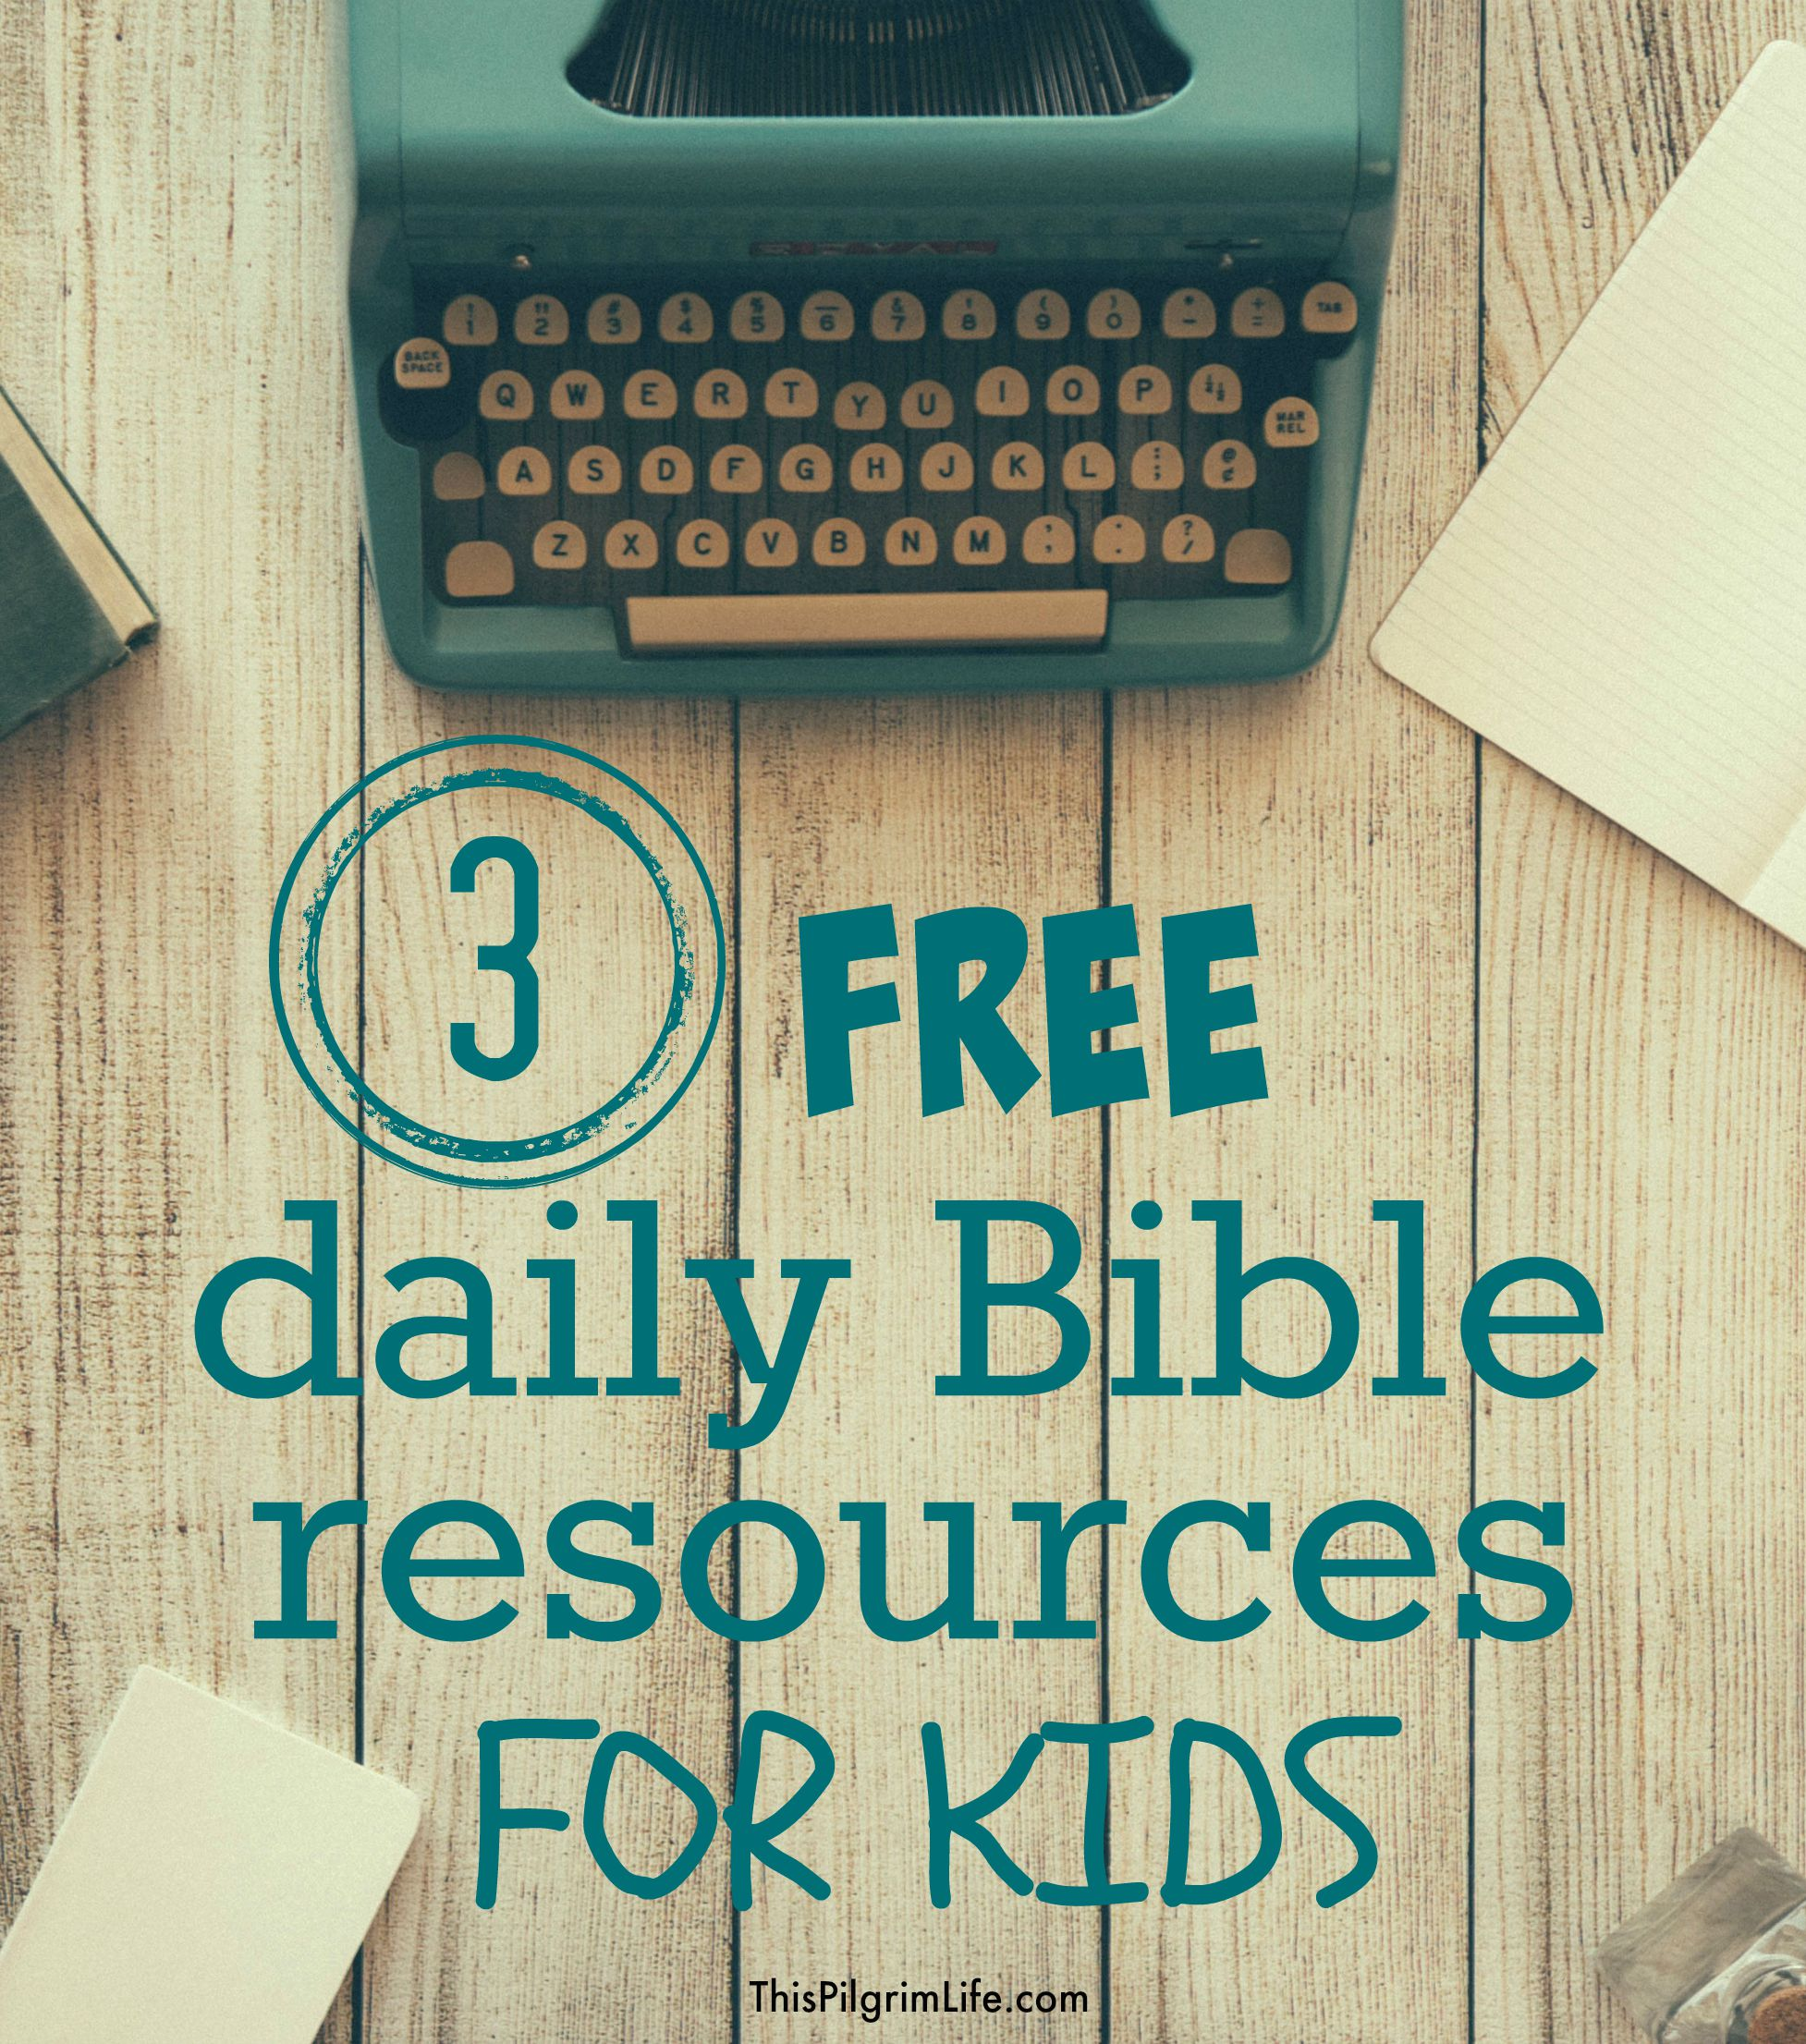 Free resources that make it easy to teach kids about the Bible everyday.